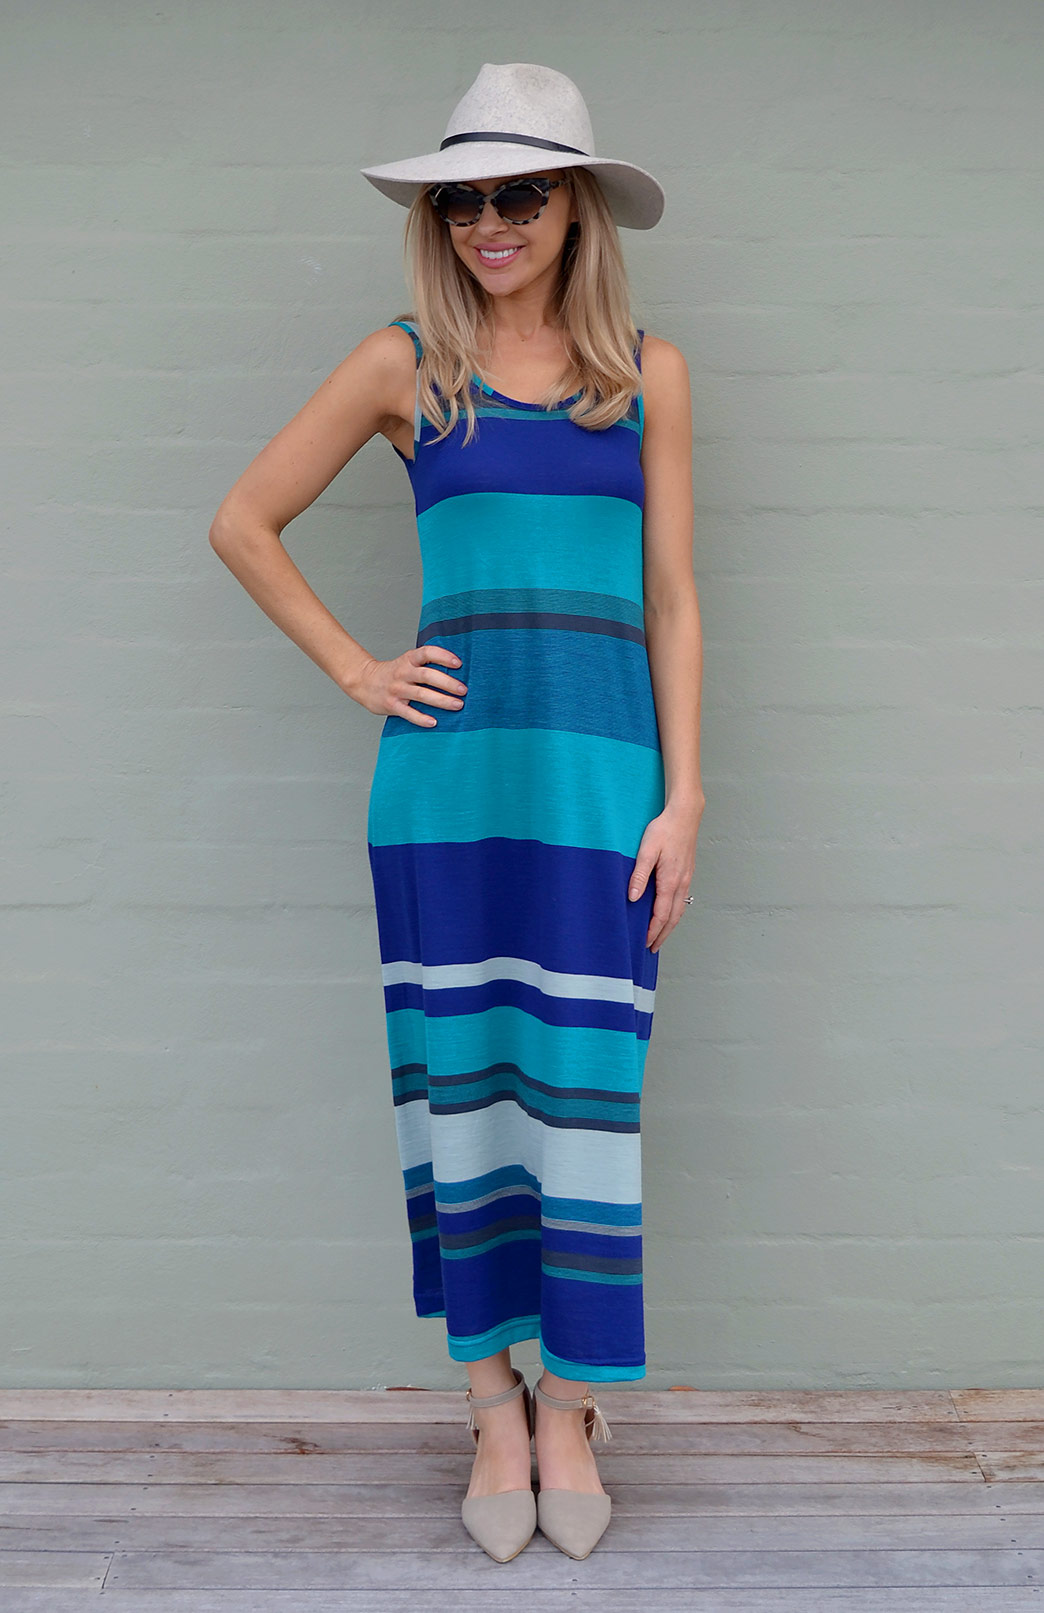 Maxi Dress - Multi Striped - Women's Merino Wool Blue and Teal Multi Striped Maxi Dress with Scoop Neckline - Smitten Merino Tasmania Australia